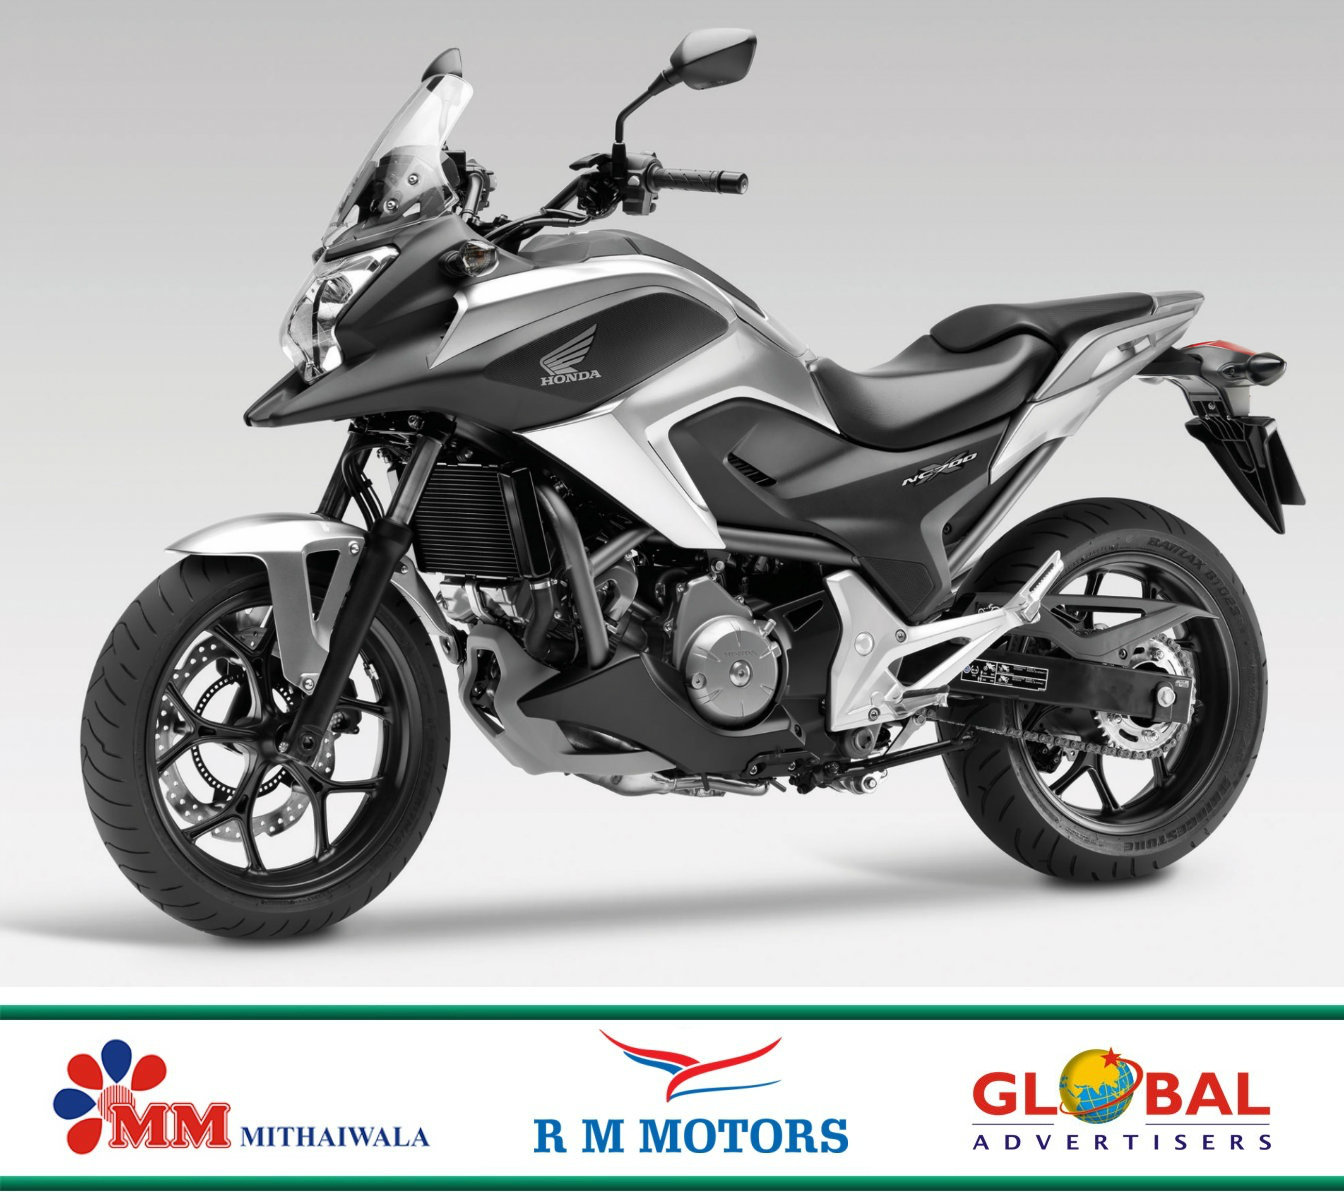 Hero honda new bikes price list in mumbai r m motors for A m motors